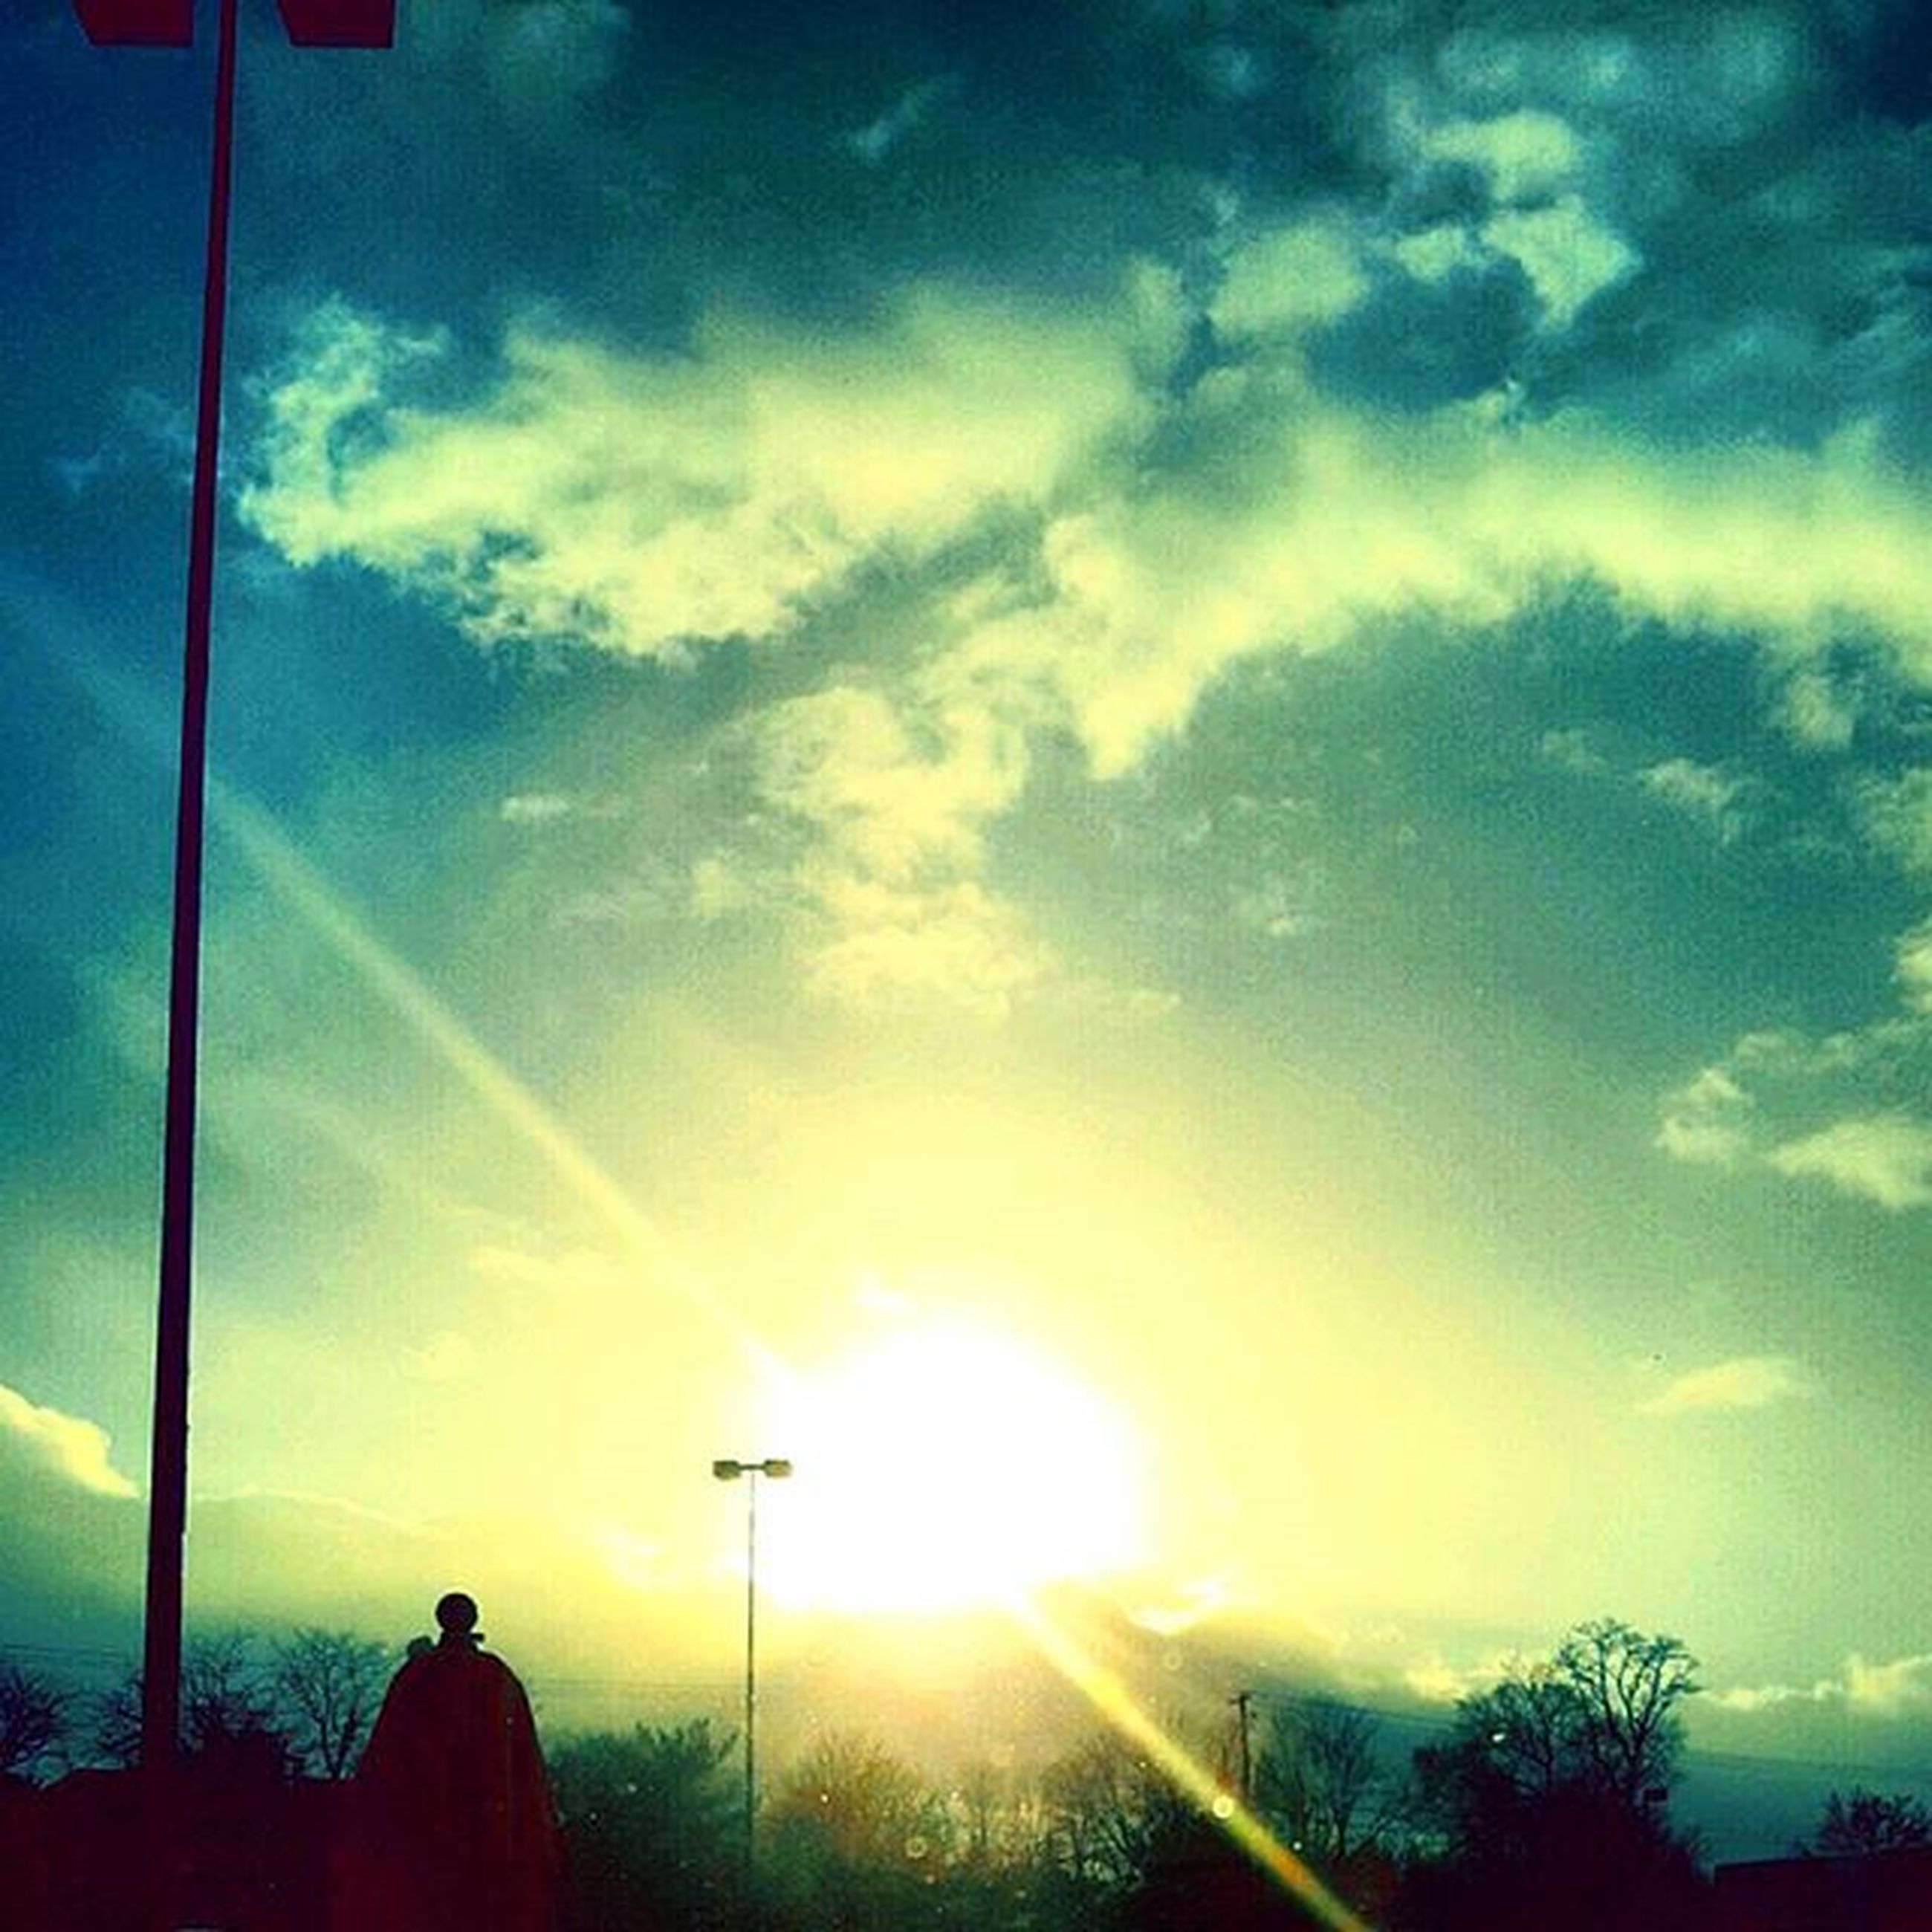 sun, sky, silhouette, sunbeam, sunset, cloud - sky, sunlight, lens flare, cloud, low angle view, street light, beauty in nature, nature, tranquility, scenics, cloudy, back lit, tranquil scene, bright, outdoors